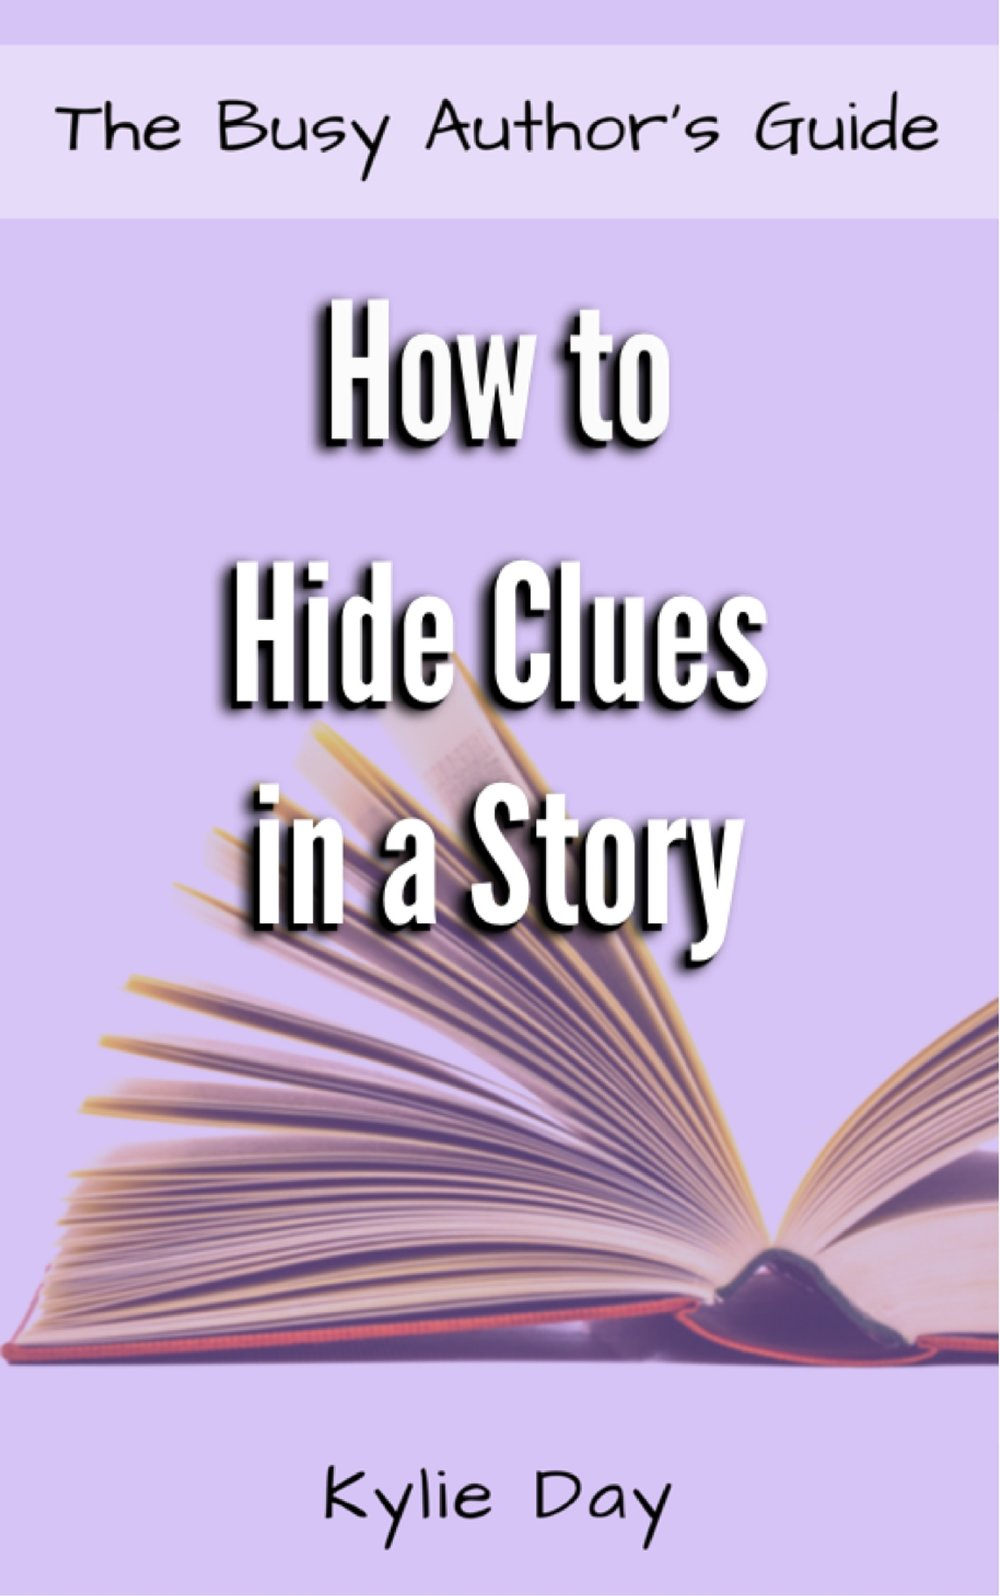 WANT TO KNOW MORE? CHECK OUT THE BOOK HOW TO HIDE CLUES IN A STORY